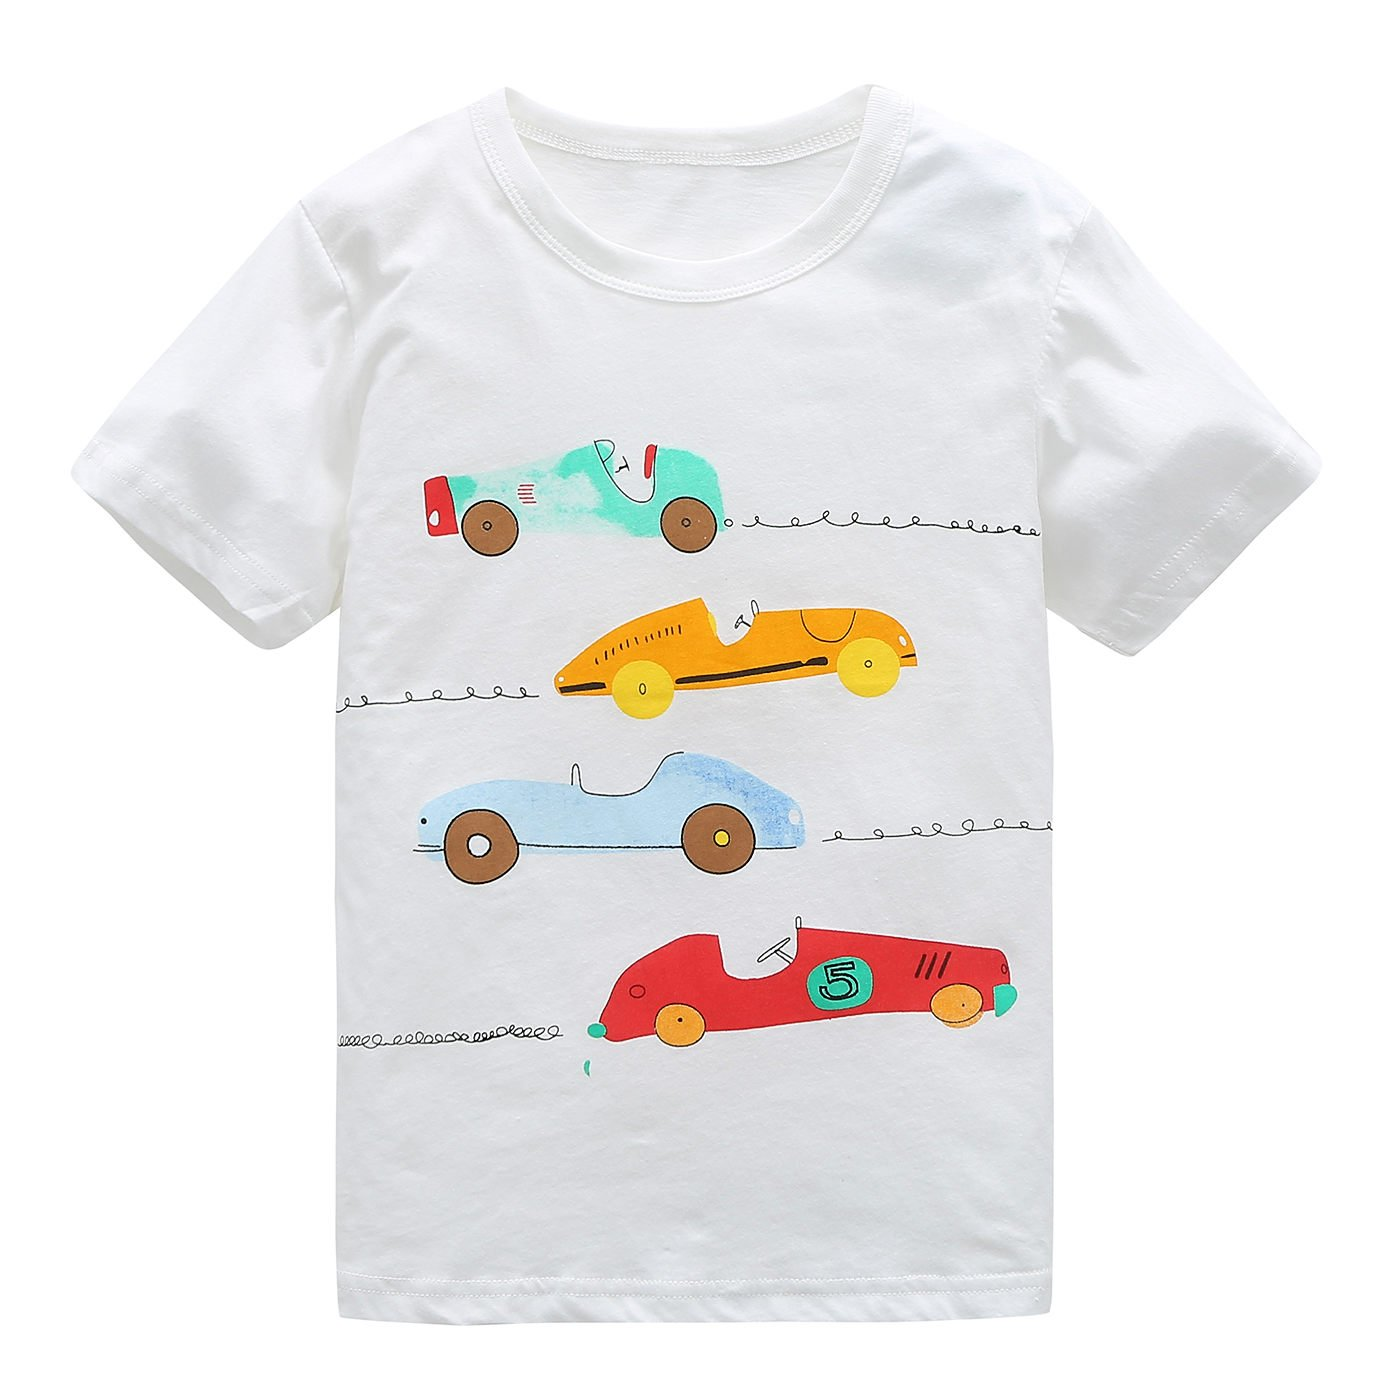 HowJoJo Big Boys Cotton Short Sleeve T-Shirts Summer Shirt Cars Graphic Tees White 7T